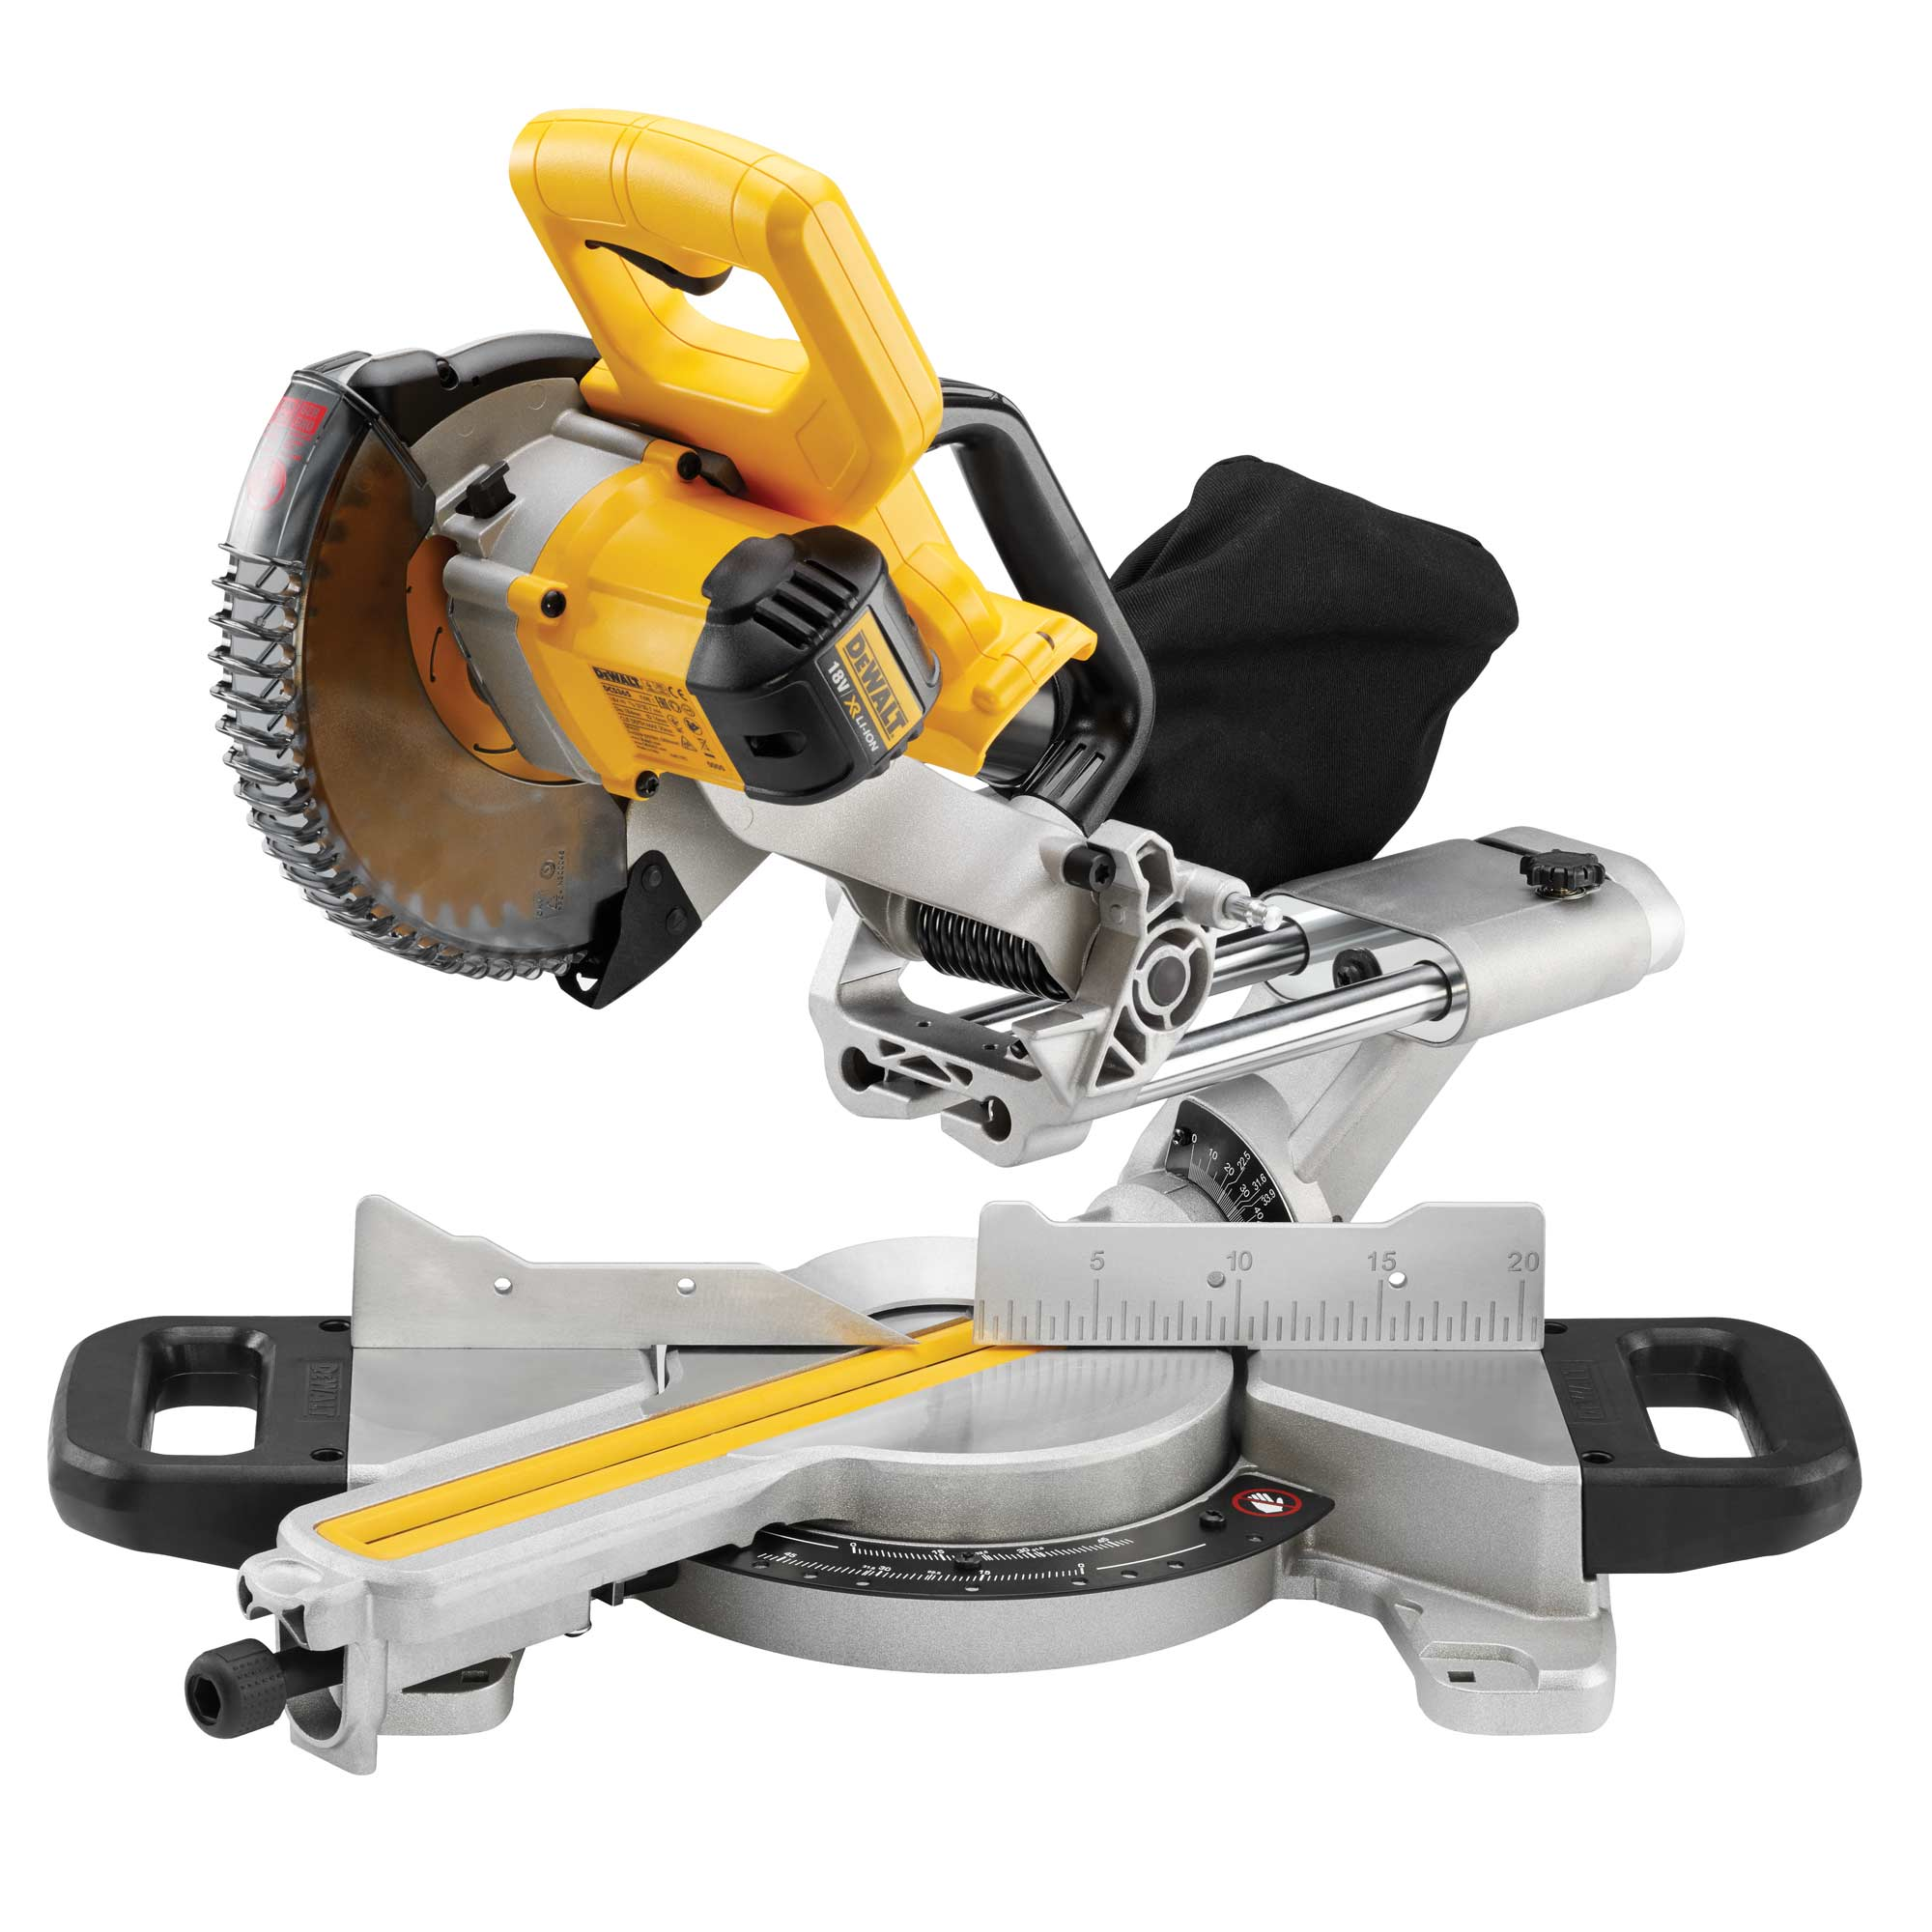 dewalt dcs365 dewalt 18v li ion cordless mitre saw with xps body only. Black Bedroom Furniture Sets. Home Design Ideas